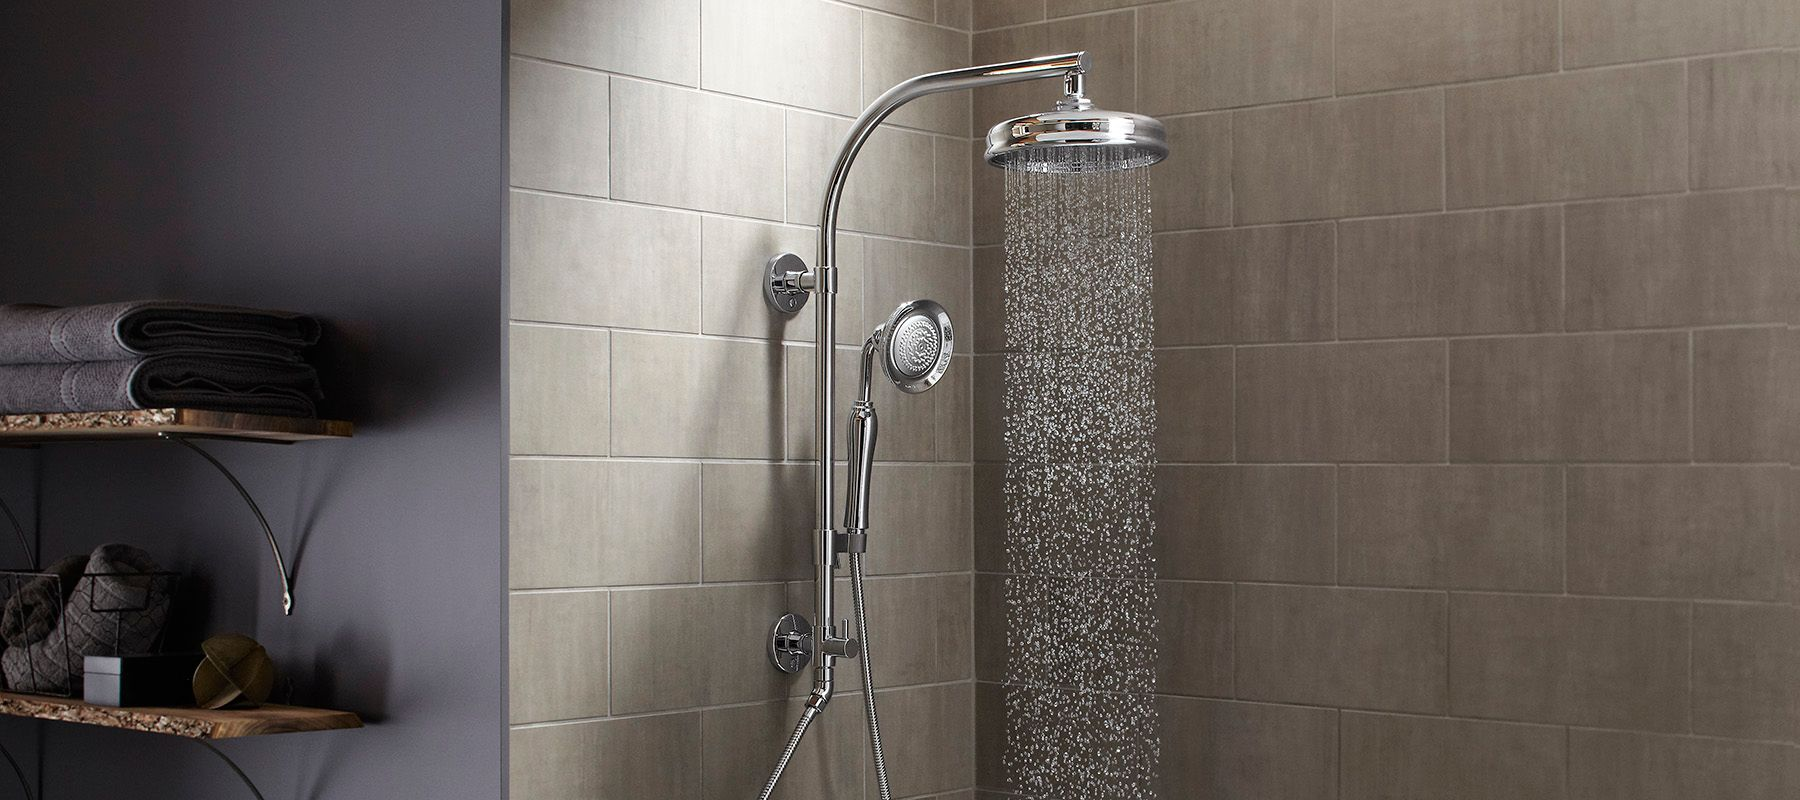 shower home regarding in e tips head brushed croma fixed design your hansgrohe rainmaker brilliant spray select